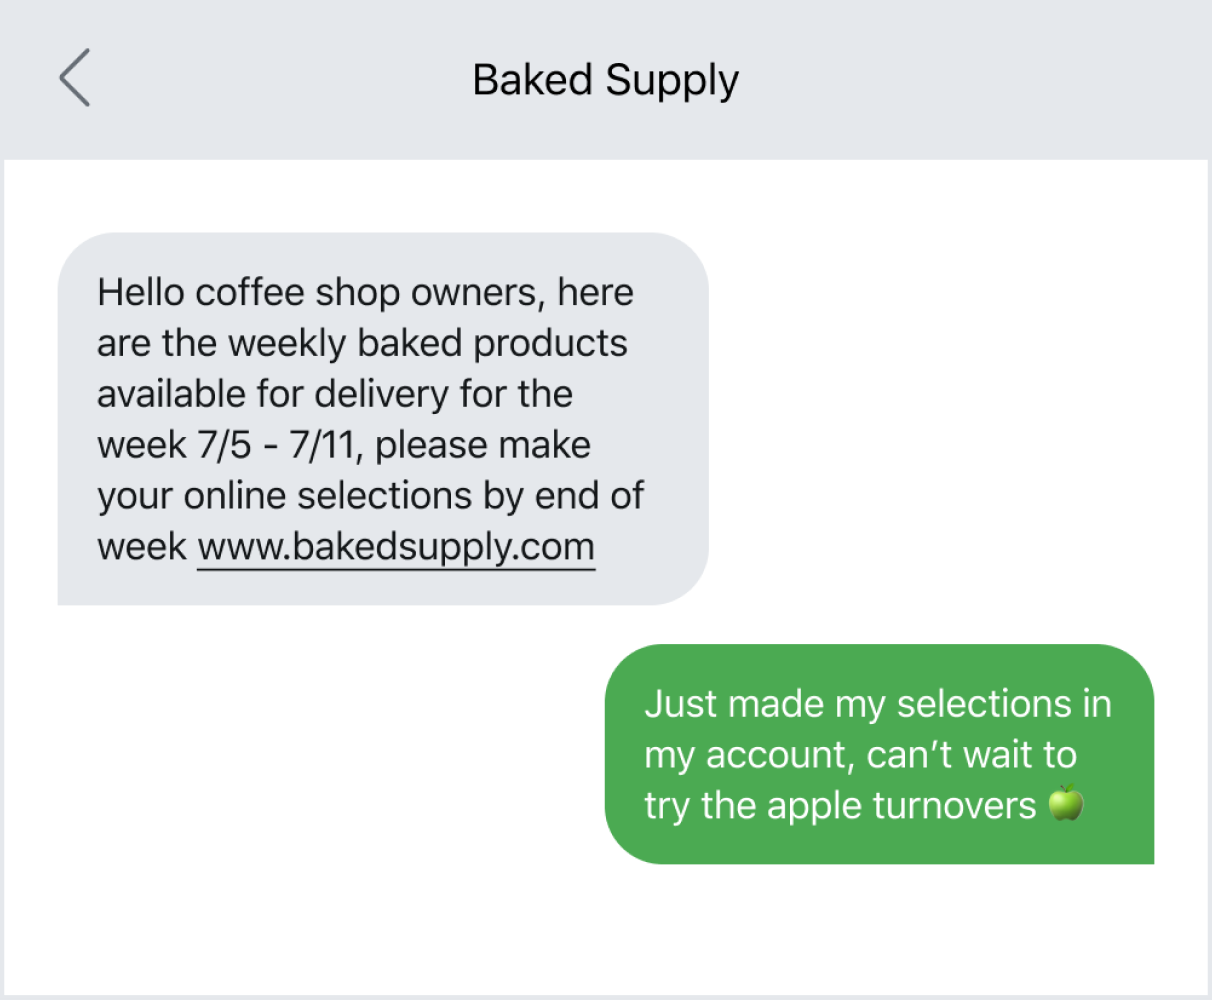 Example of promoting a new product via text